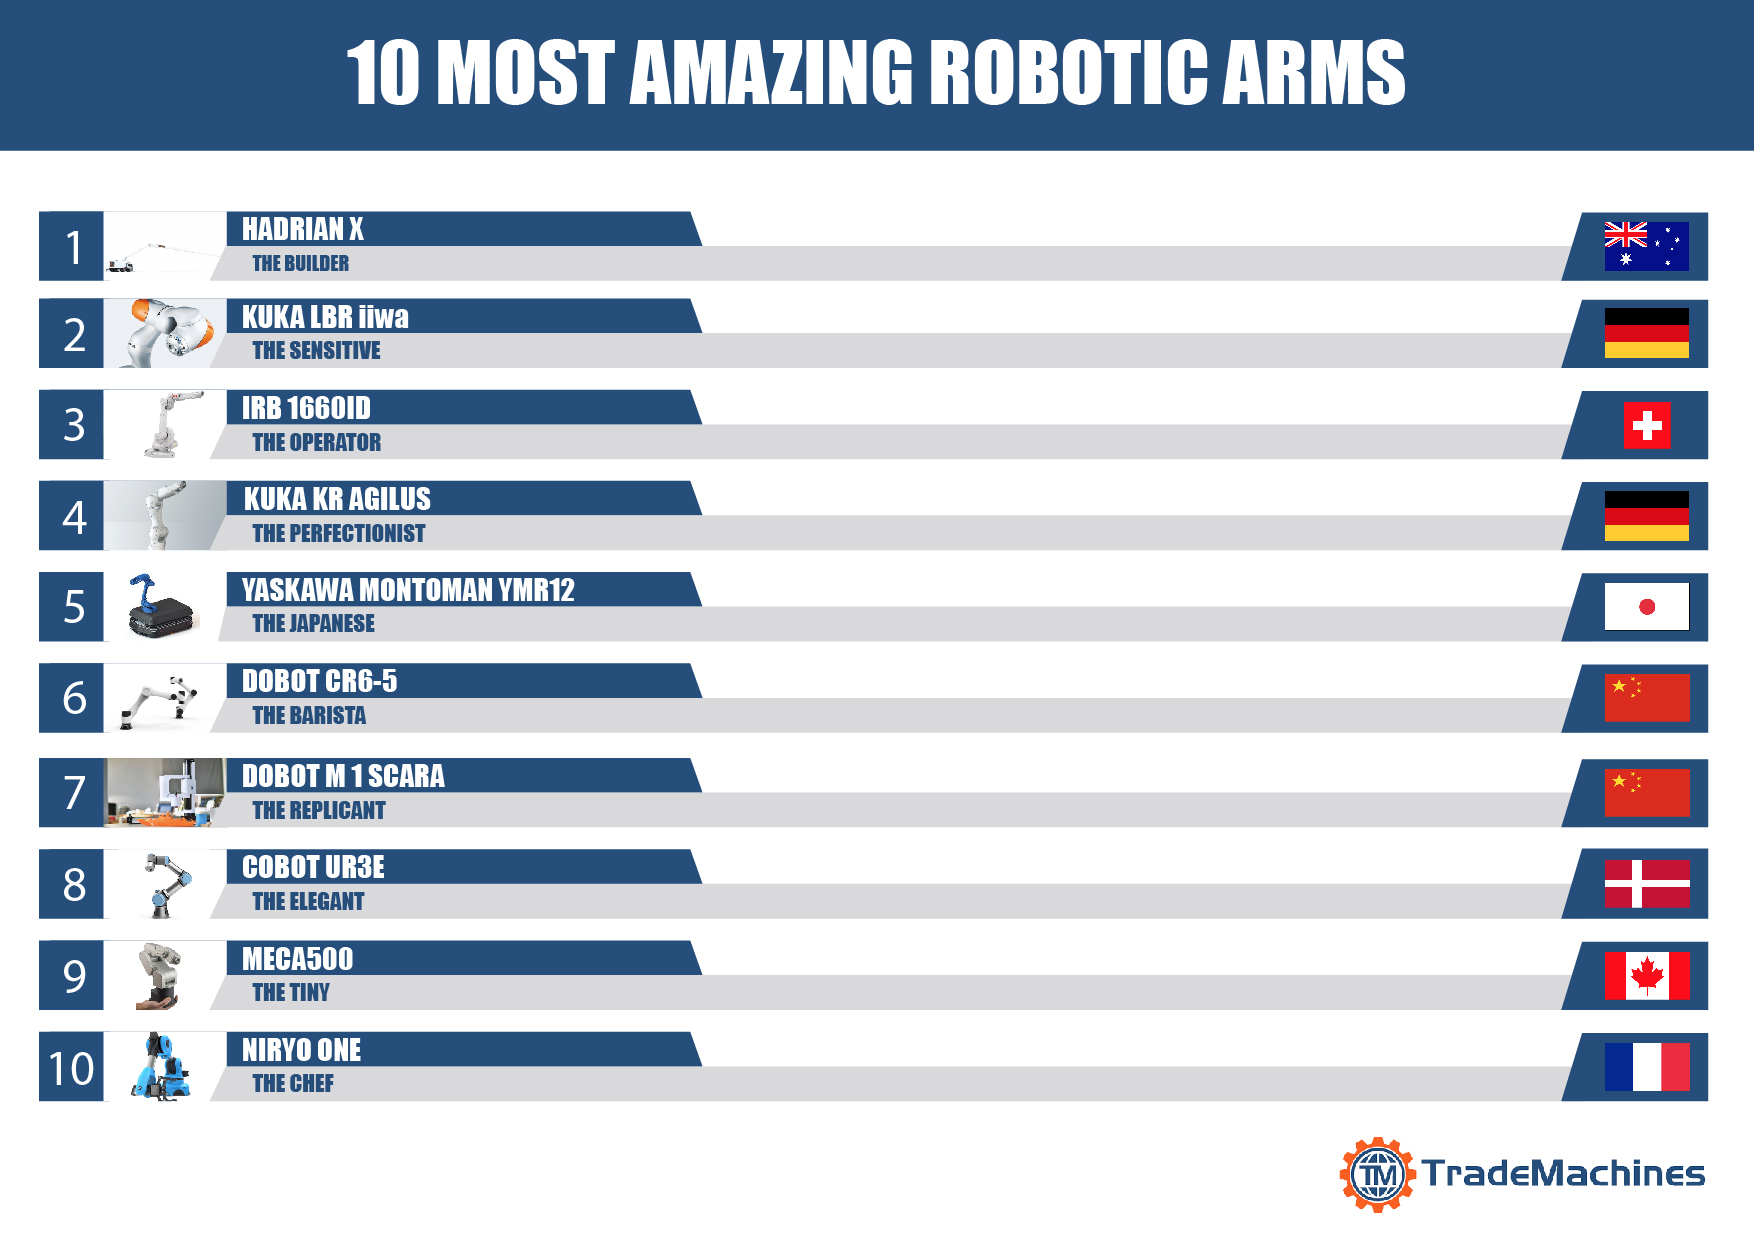 10 Most Amazing Robotic Arms – Are You Ready to Adopt One?